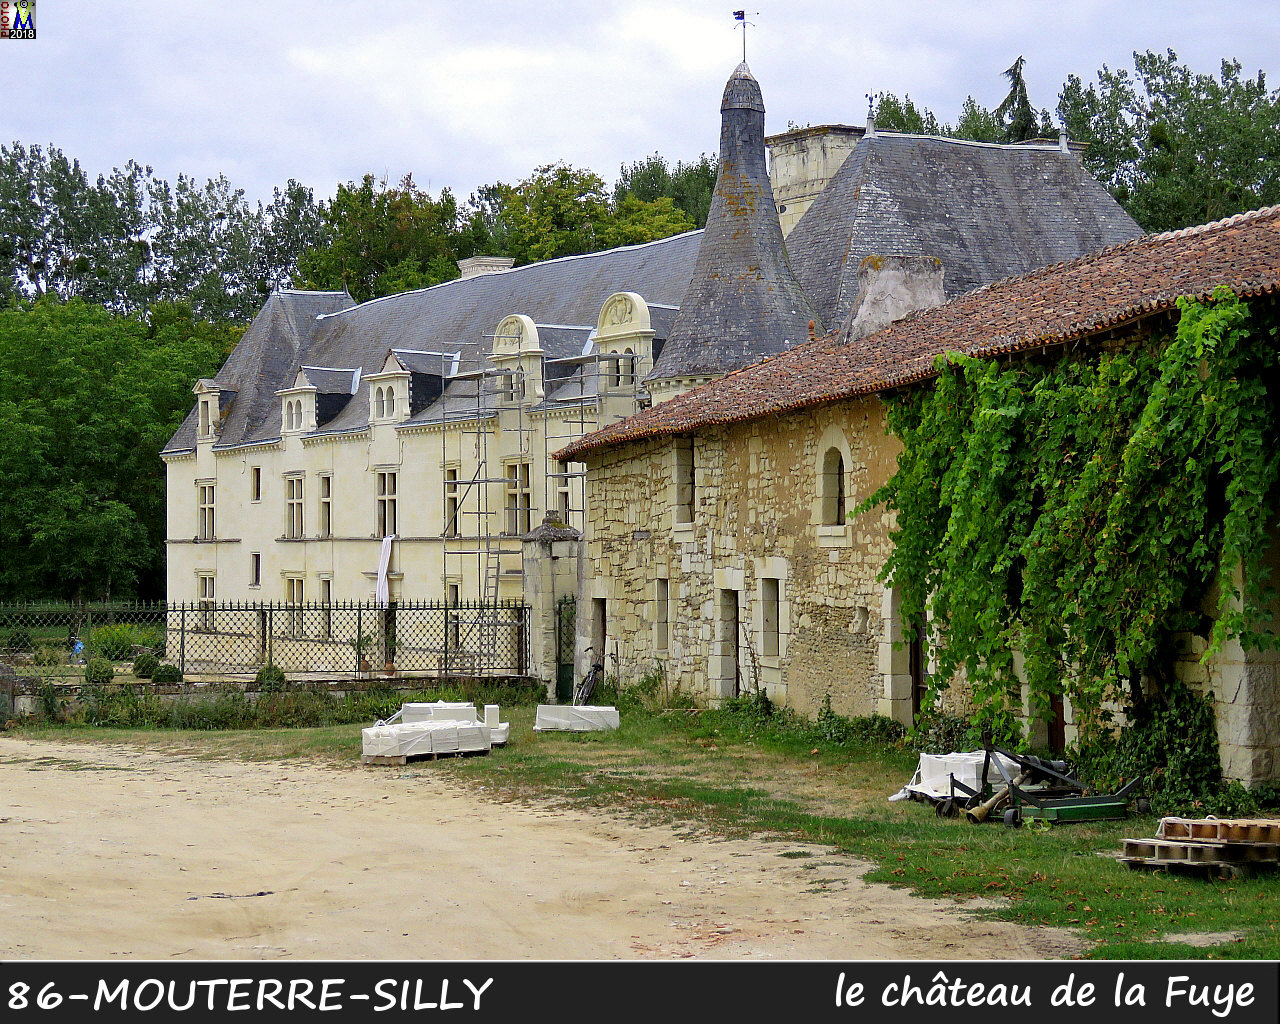 86MOUTERRE-SILLY_chateau_1000.jpg